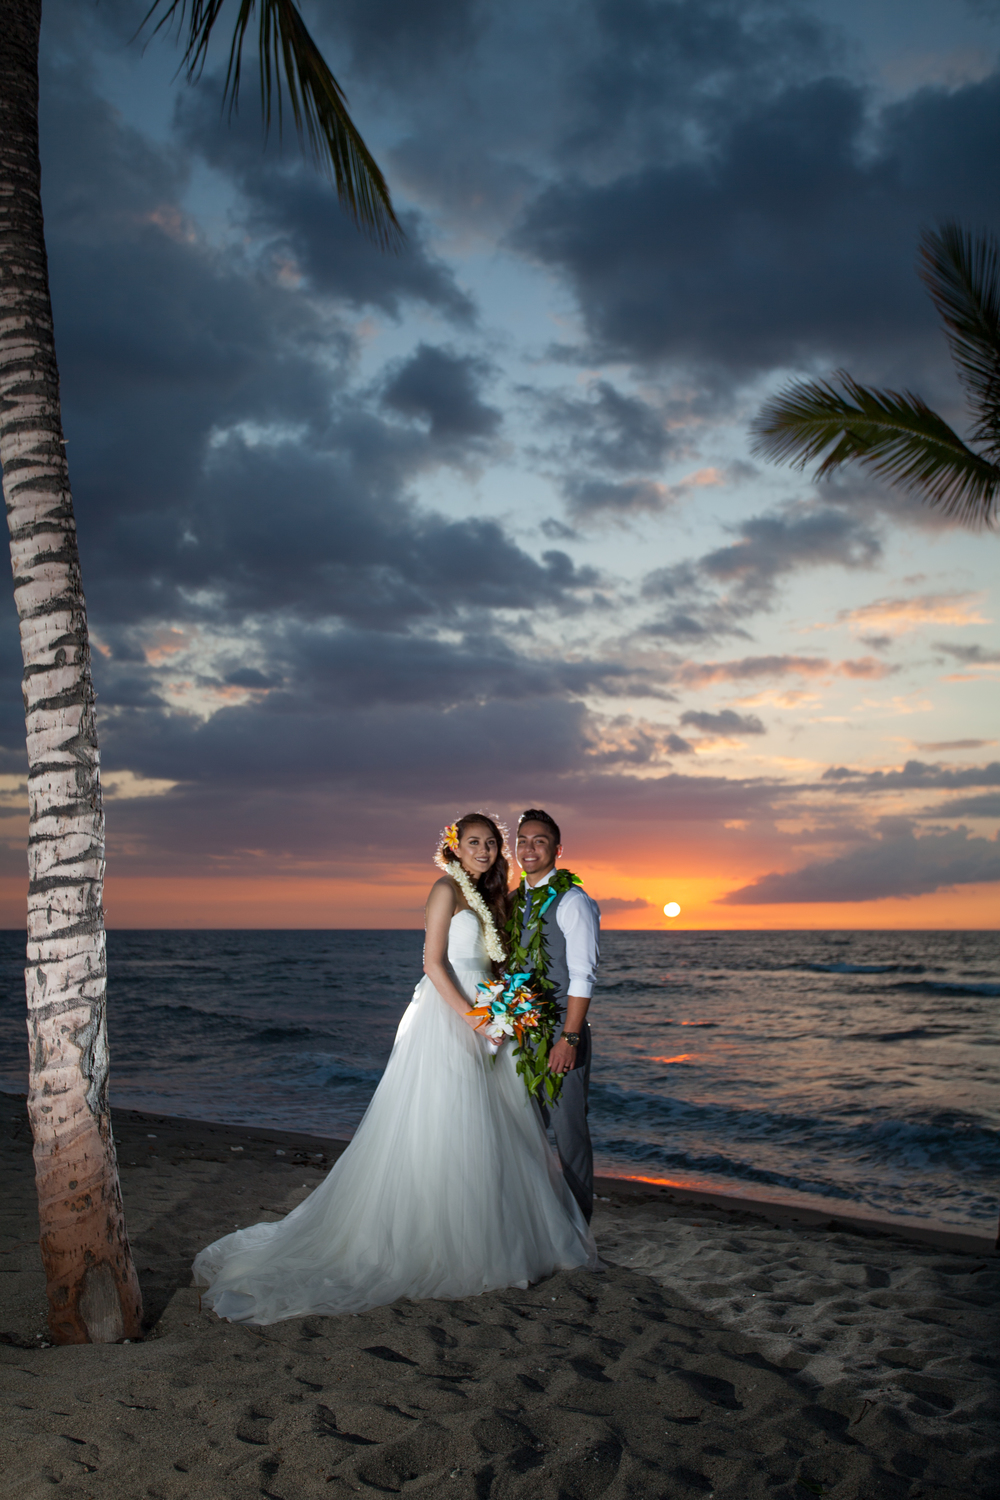 big island hawaii mauna lani resort wedding © kelilina photography 20160523185222-1.jpg